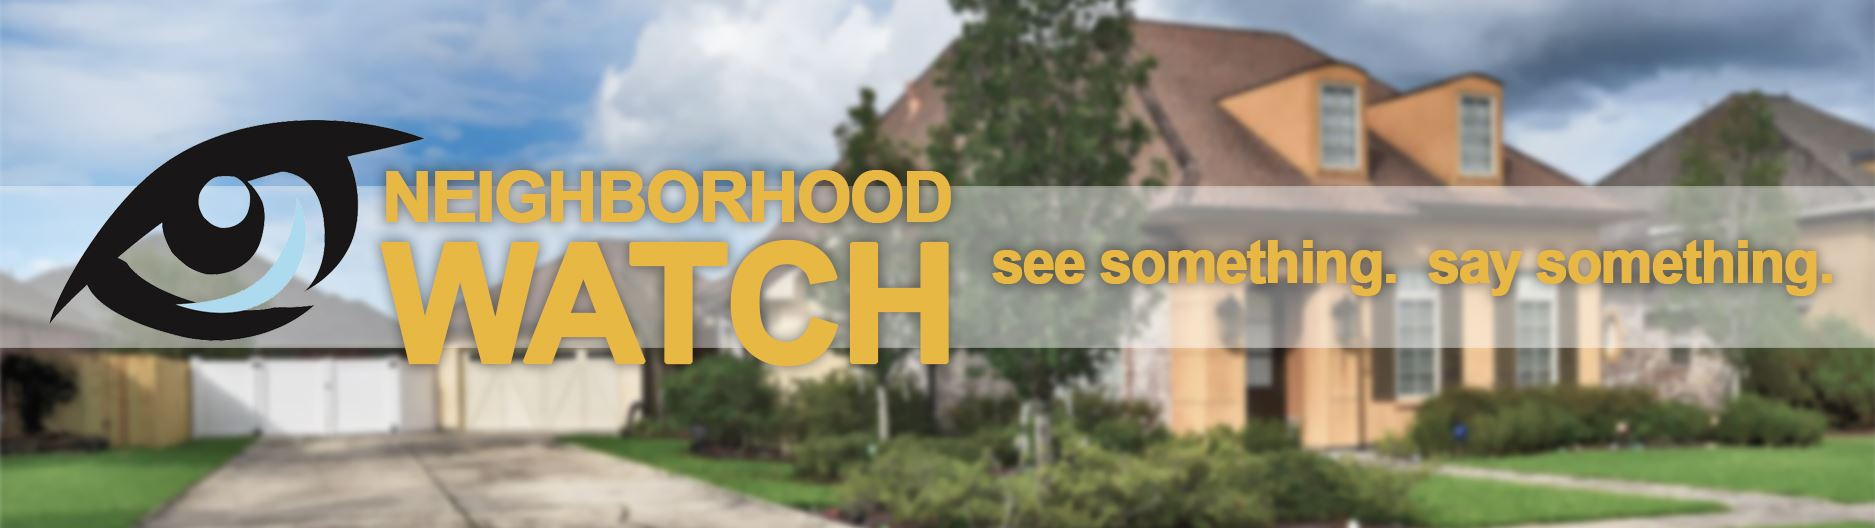 neighborhood watch banner 2